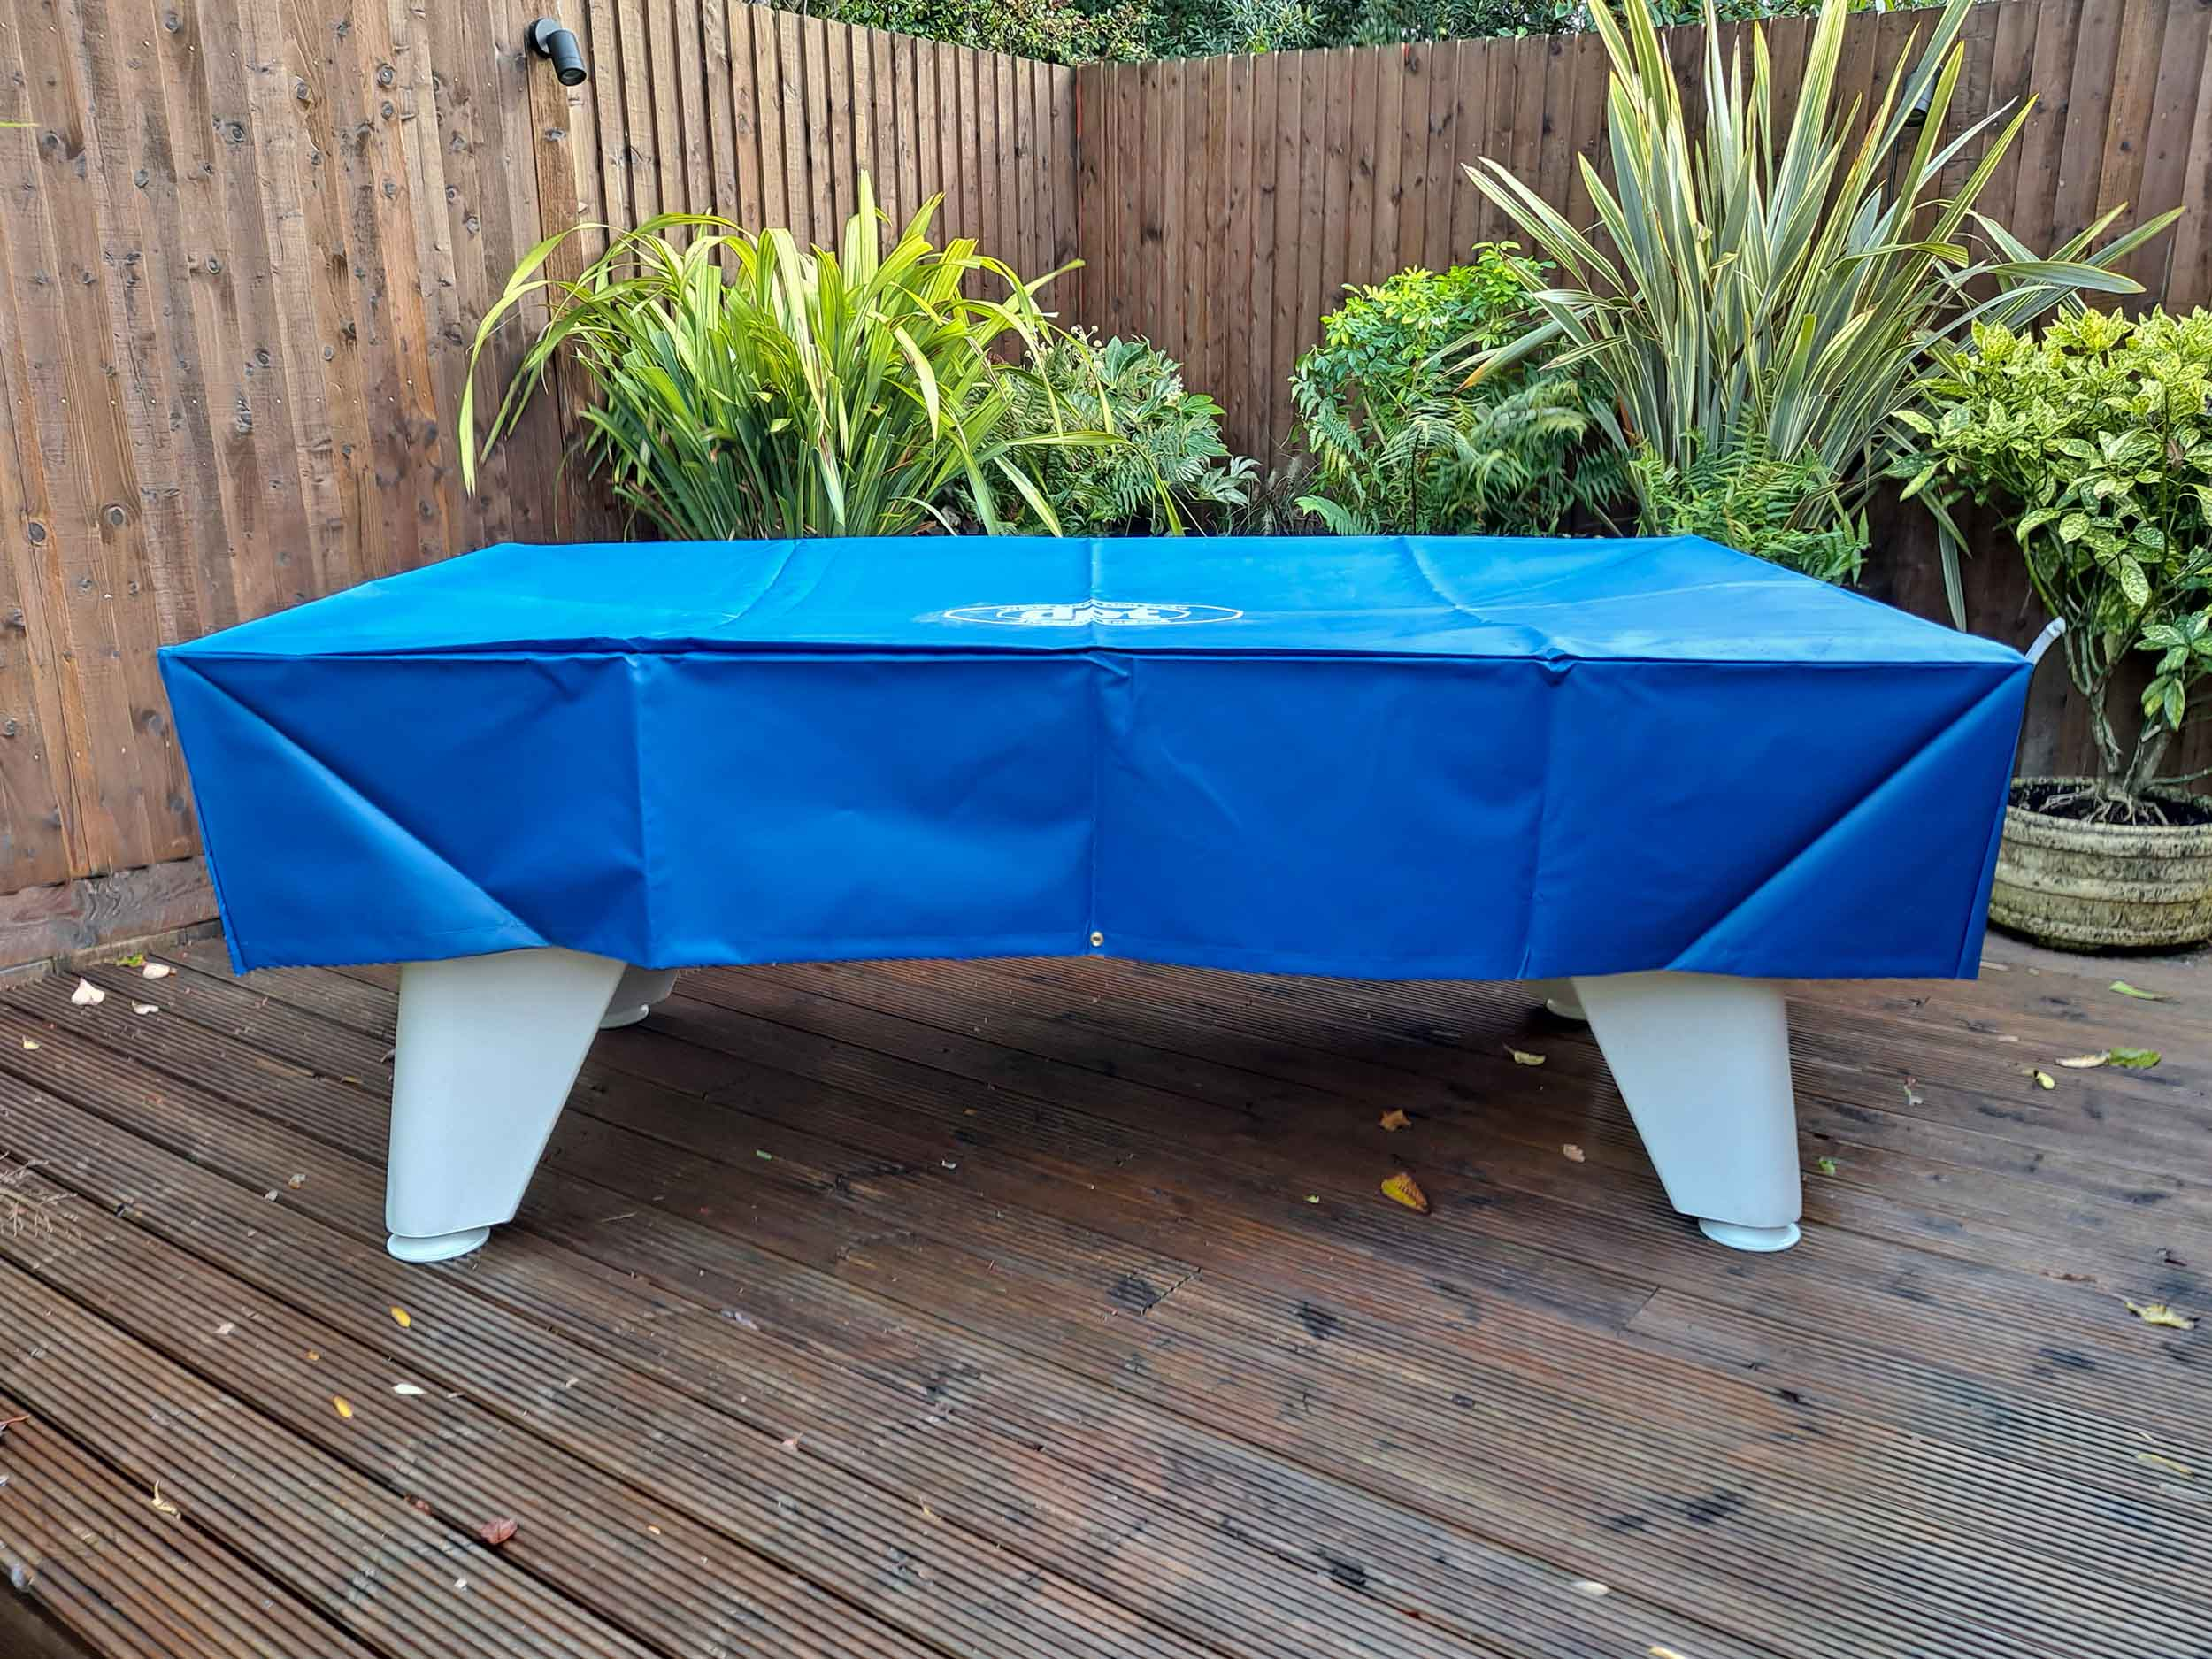 Outback 2.0 Outdoor Pool Table With Cover - White Finish - Blue Cloth - Installation - 6